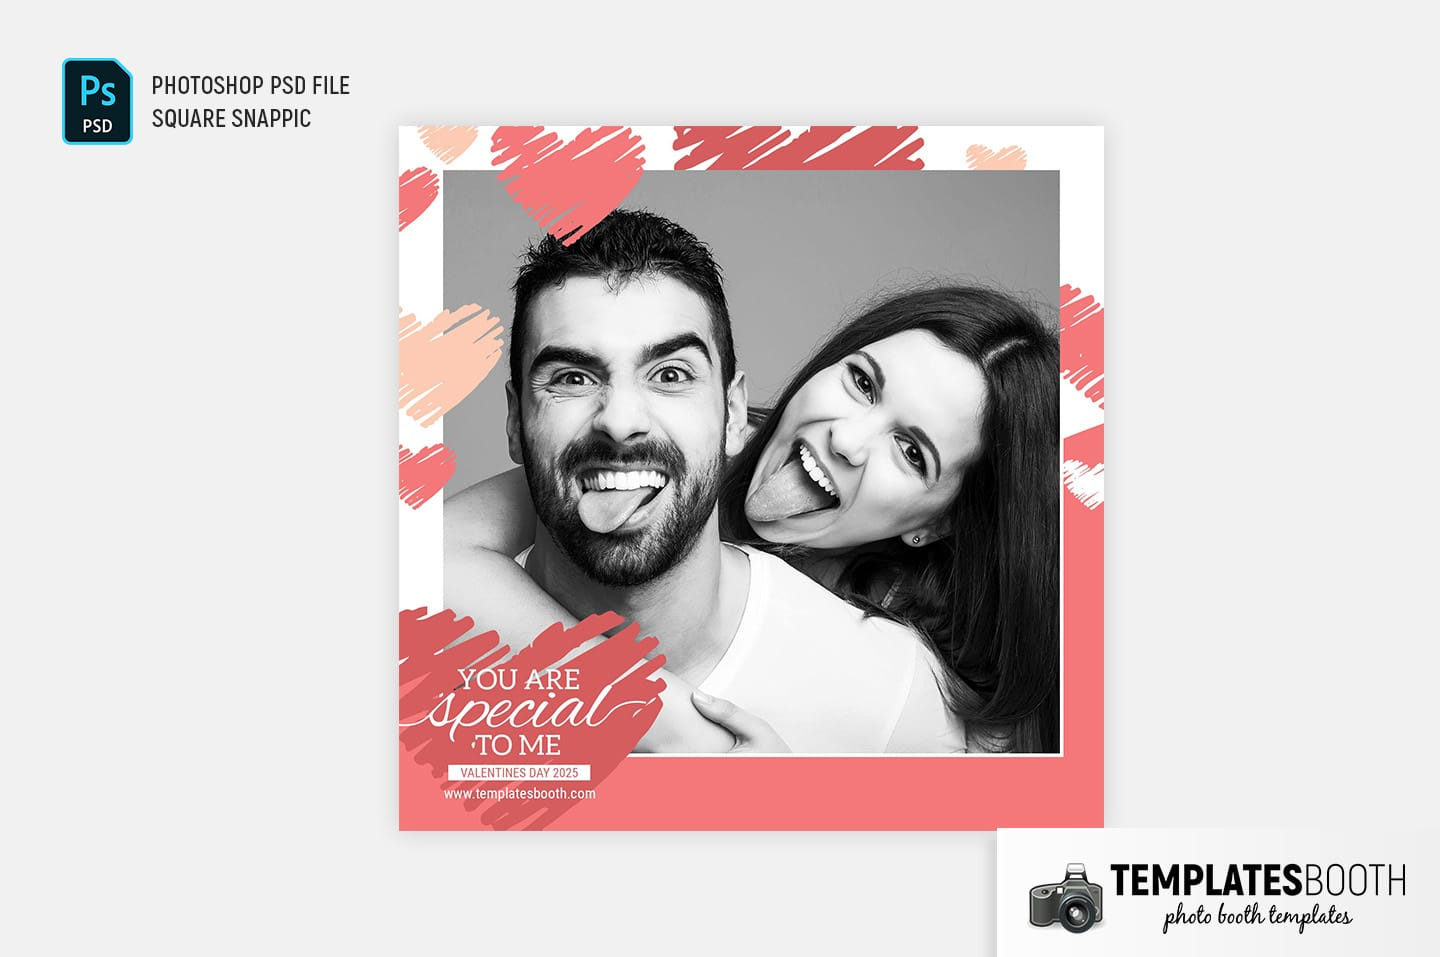 Valentine's Day Photo Booth Template (Snappic)